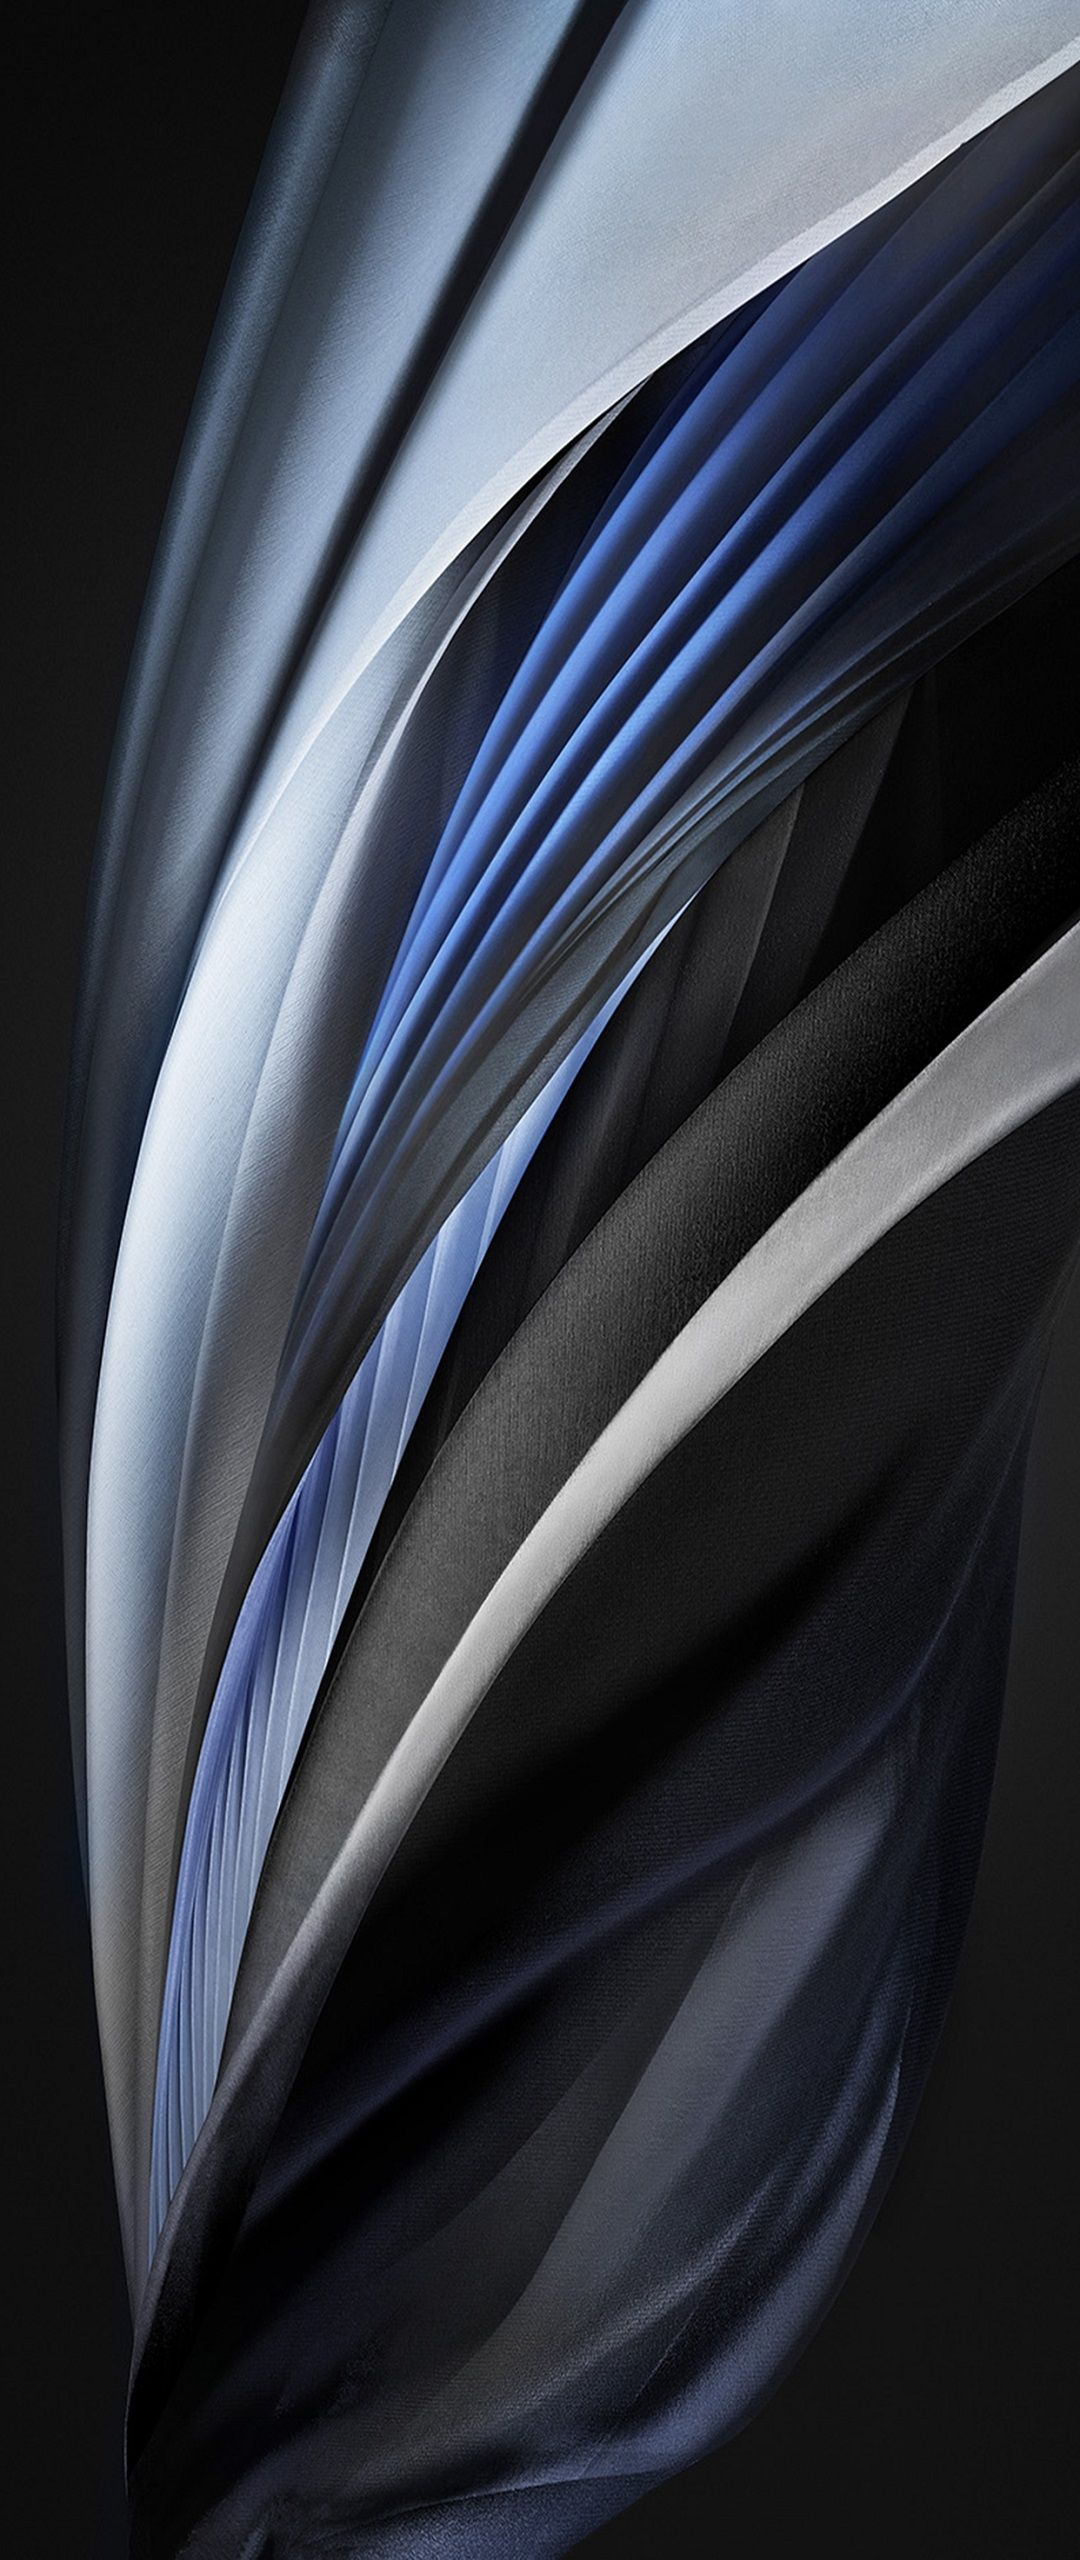 Pin on iPhone 12 wallpapers 1080x2560